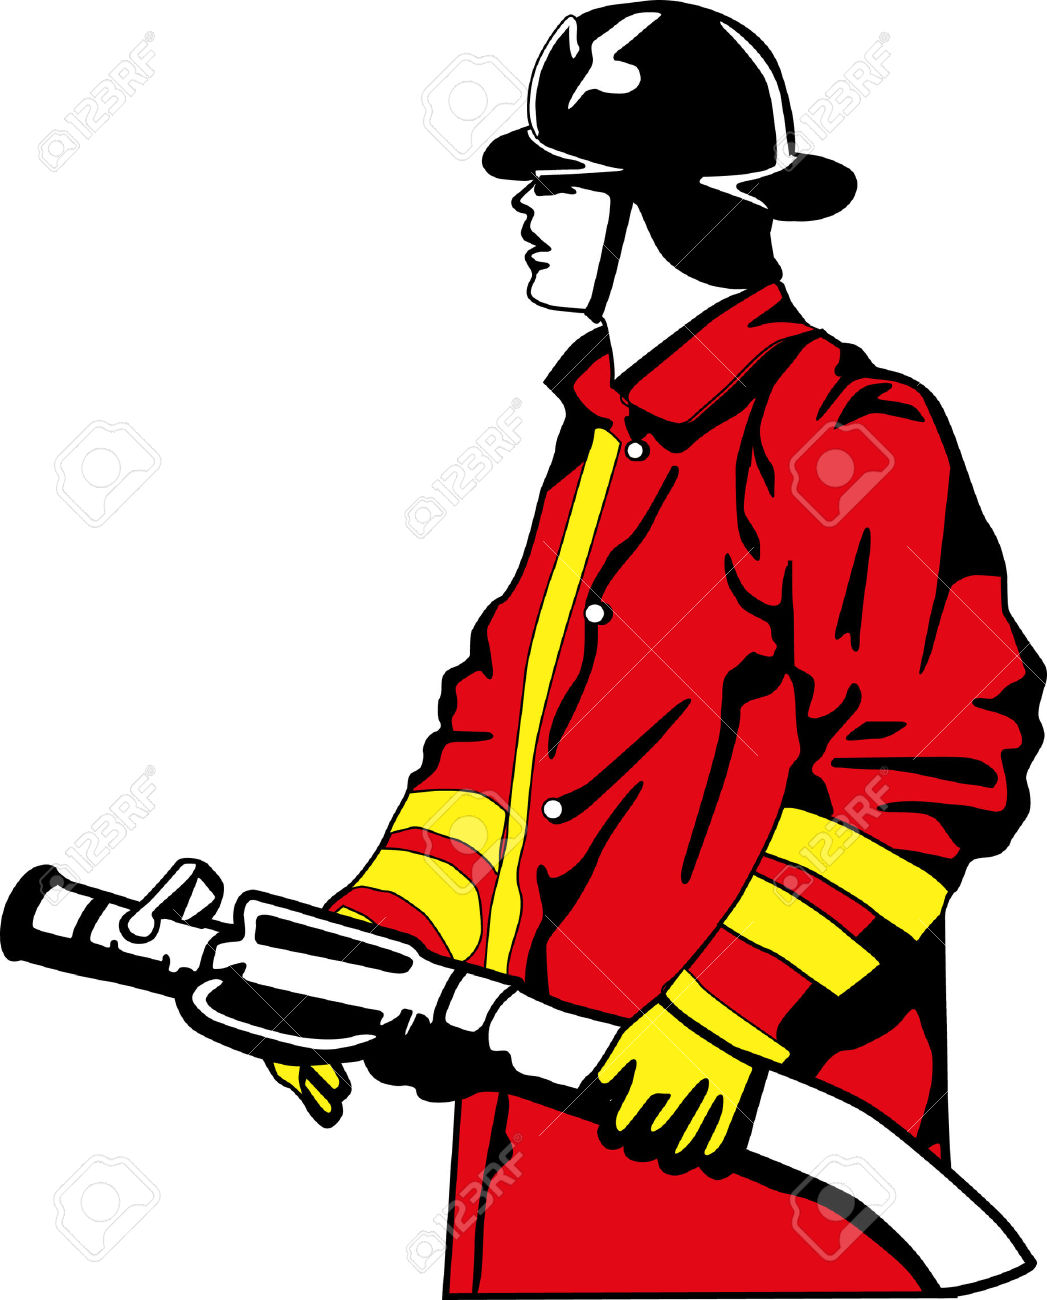 1047x1300 Firefighter Rescuing People Firefighter Clipart, Explore Pictures